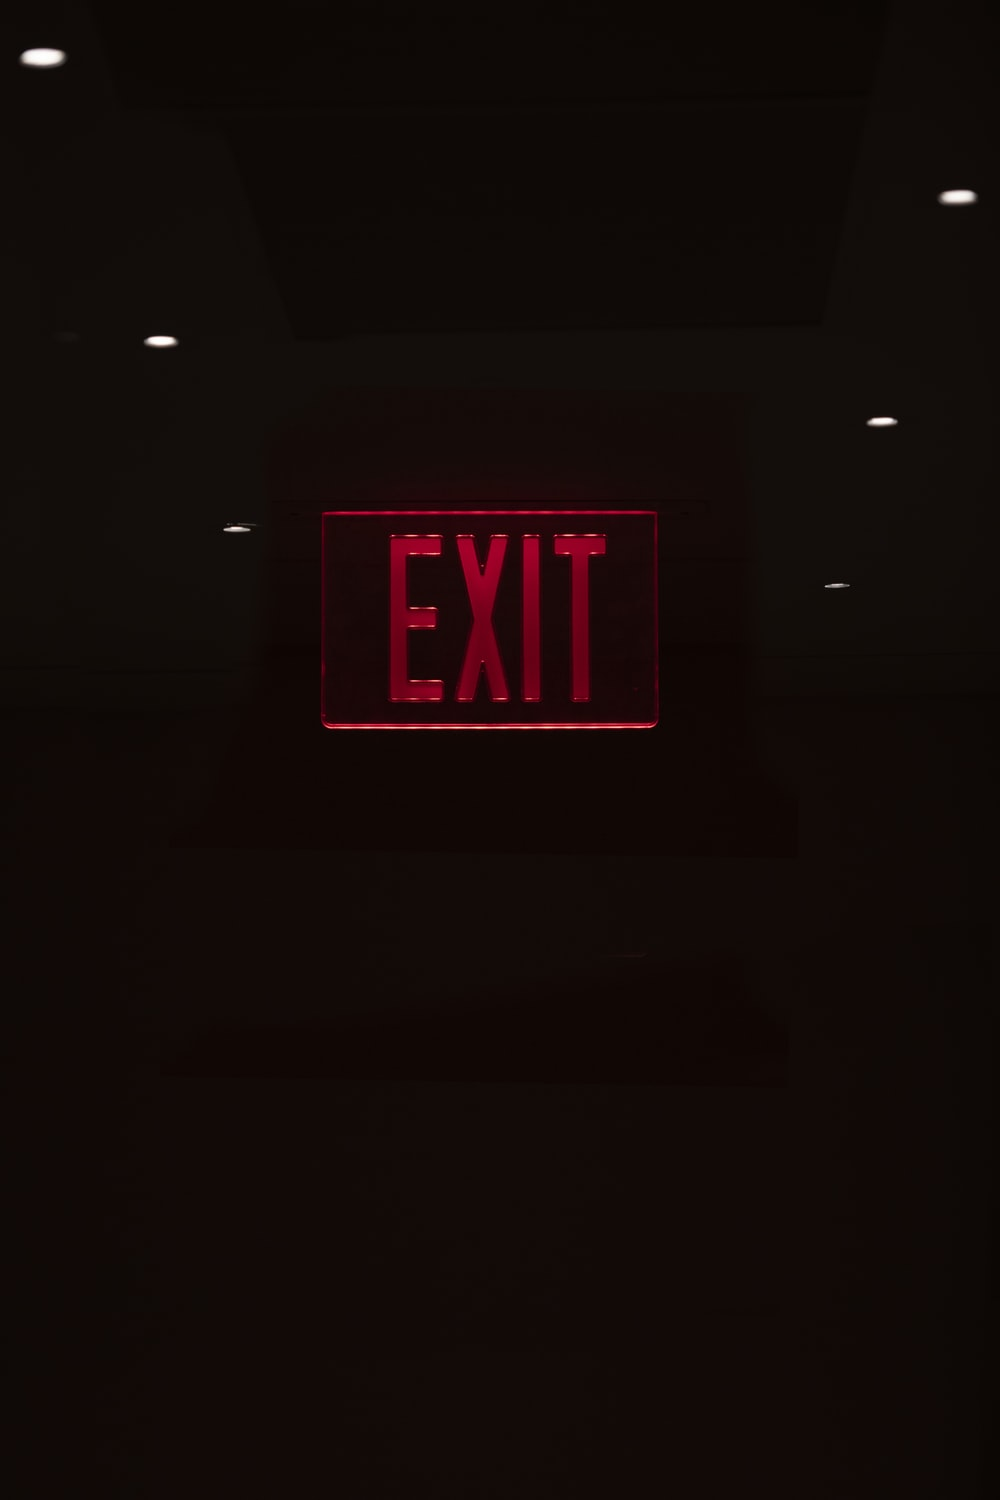 lighted LED exit sign